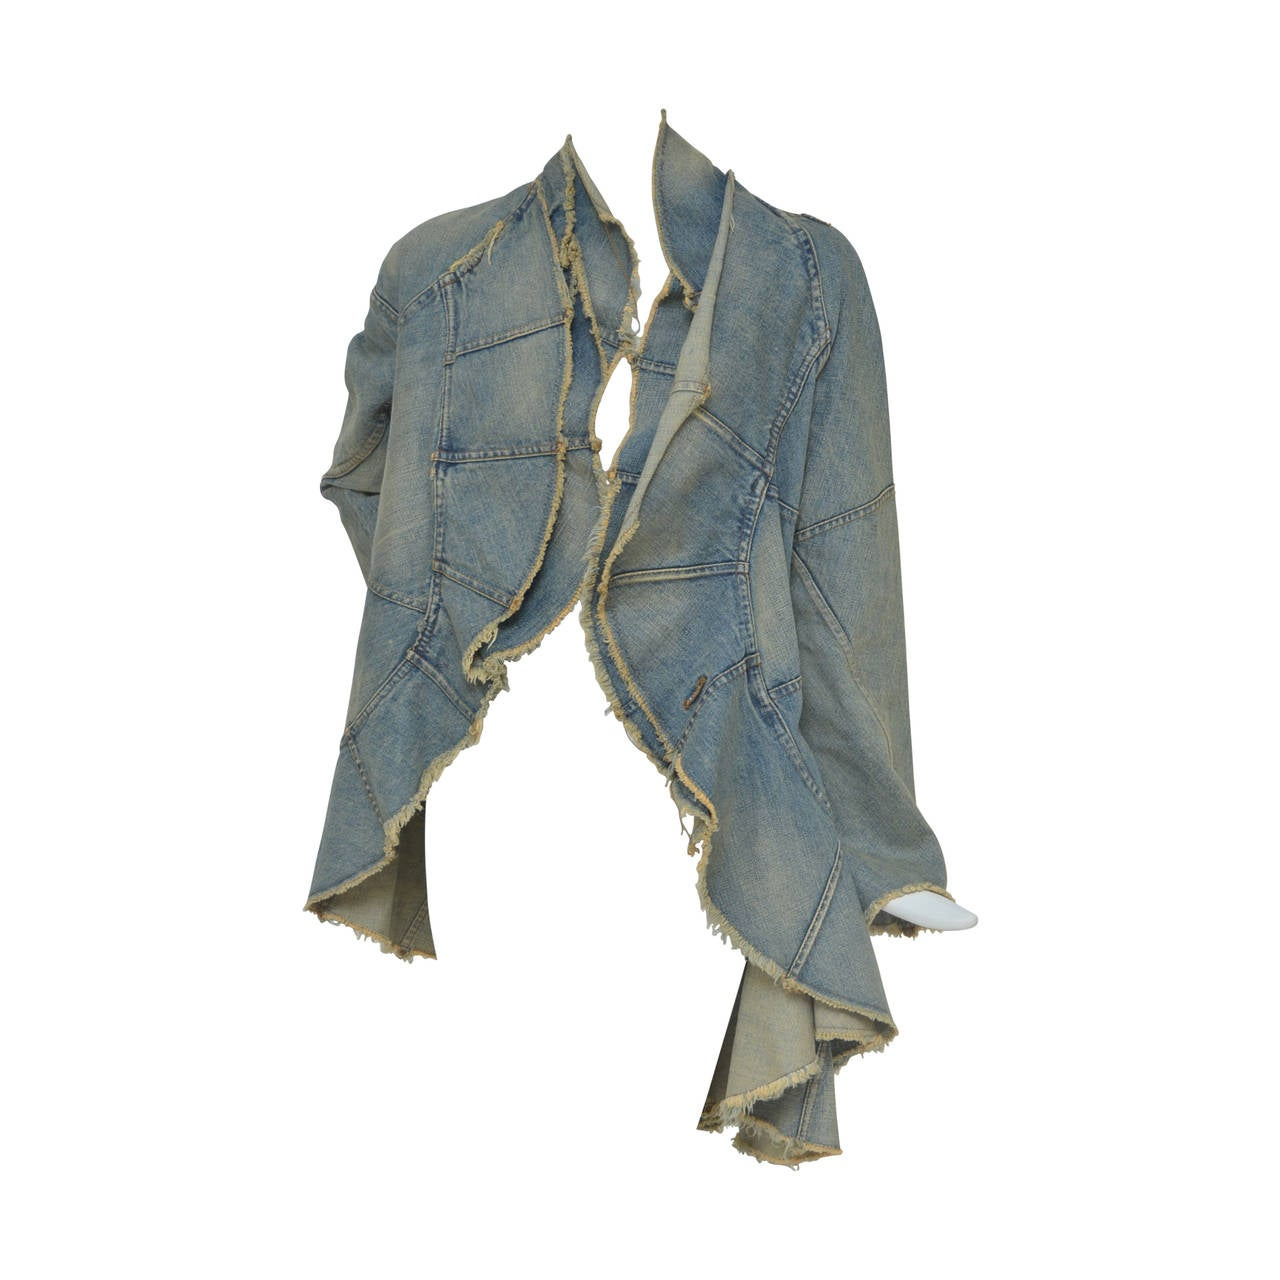 Junya Watanabe Comme Des Garcons Distressed Denim jacket  AD 2001  S 1